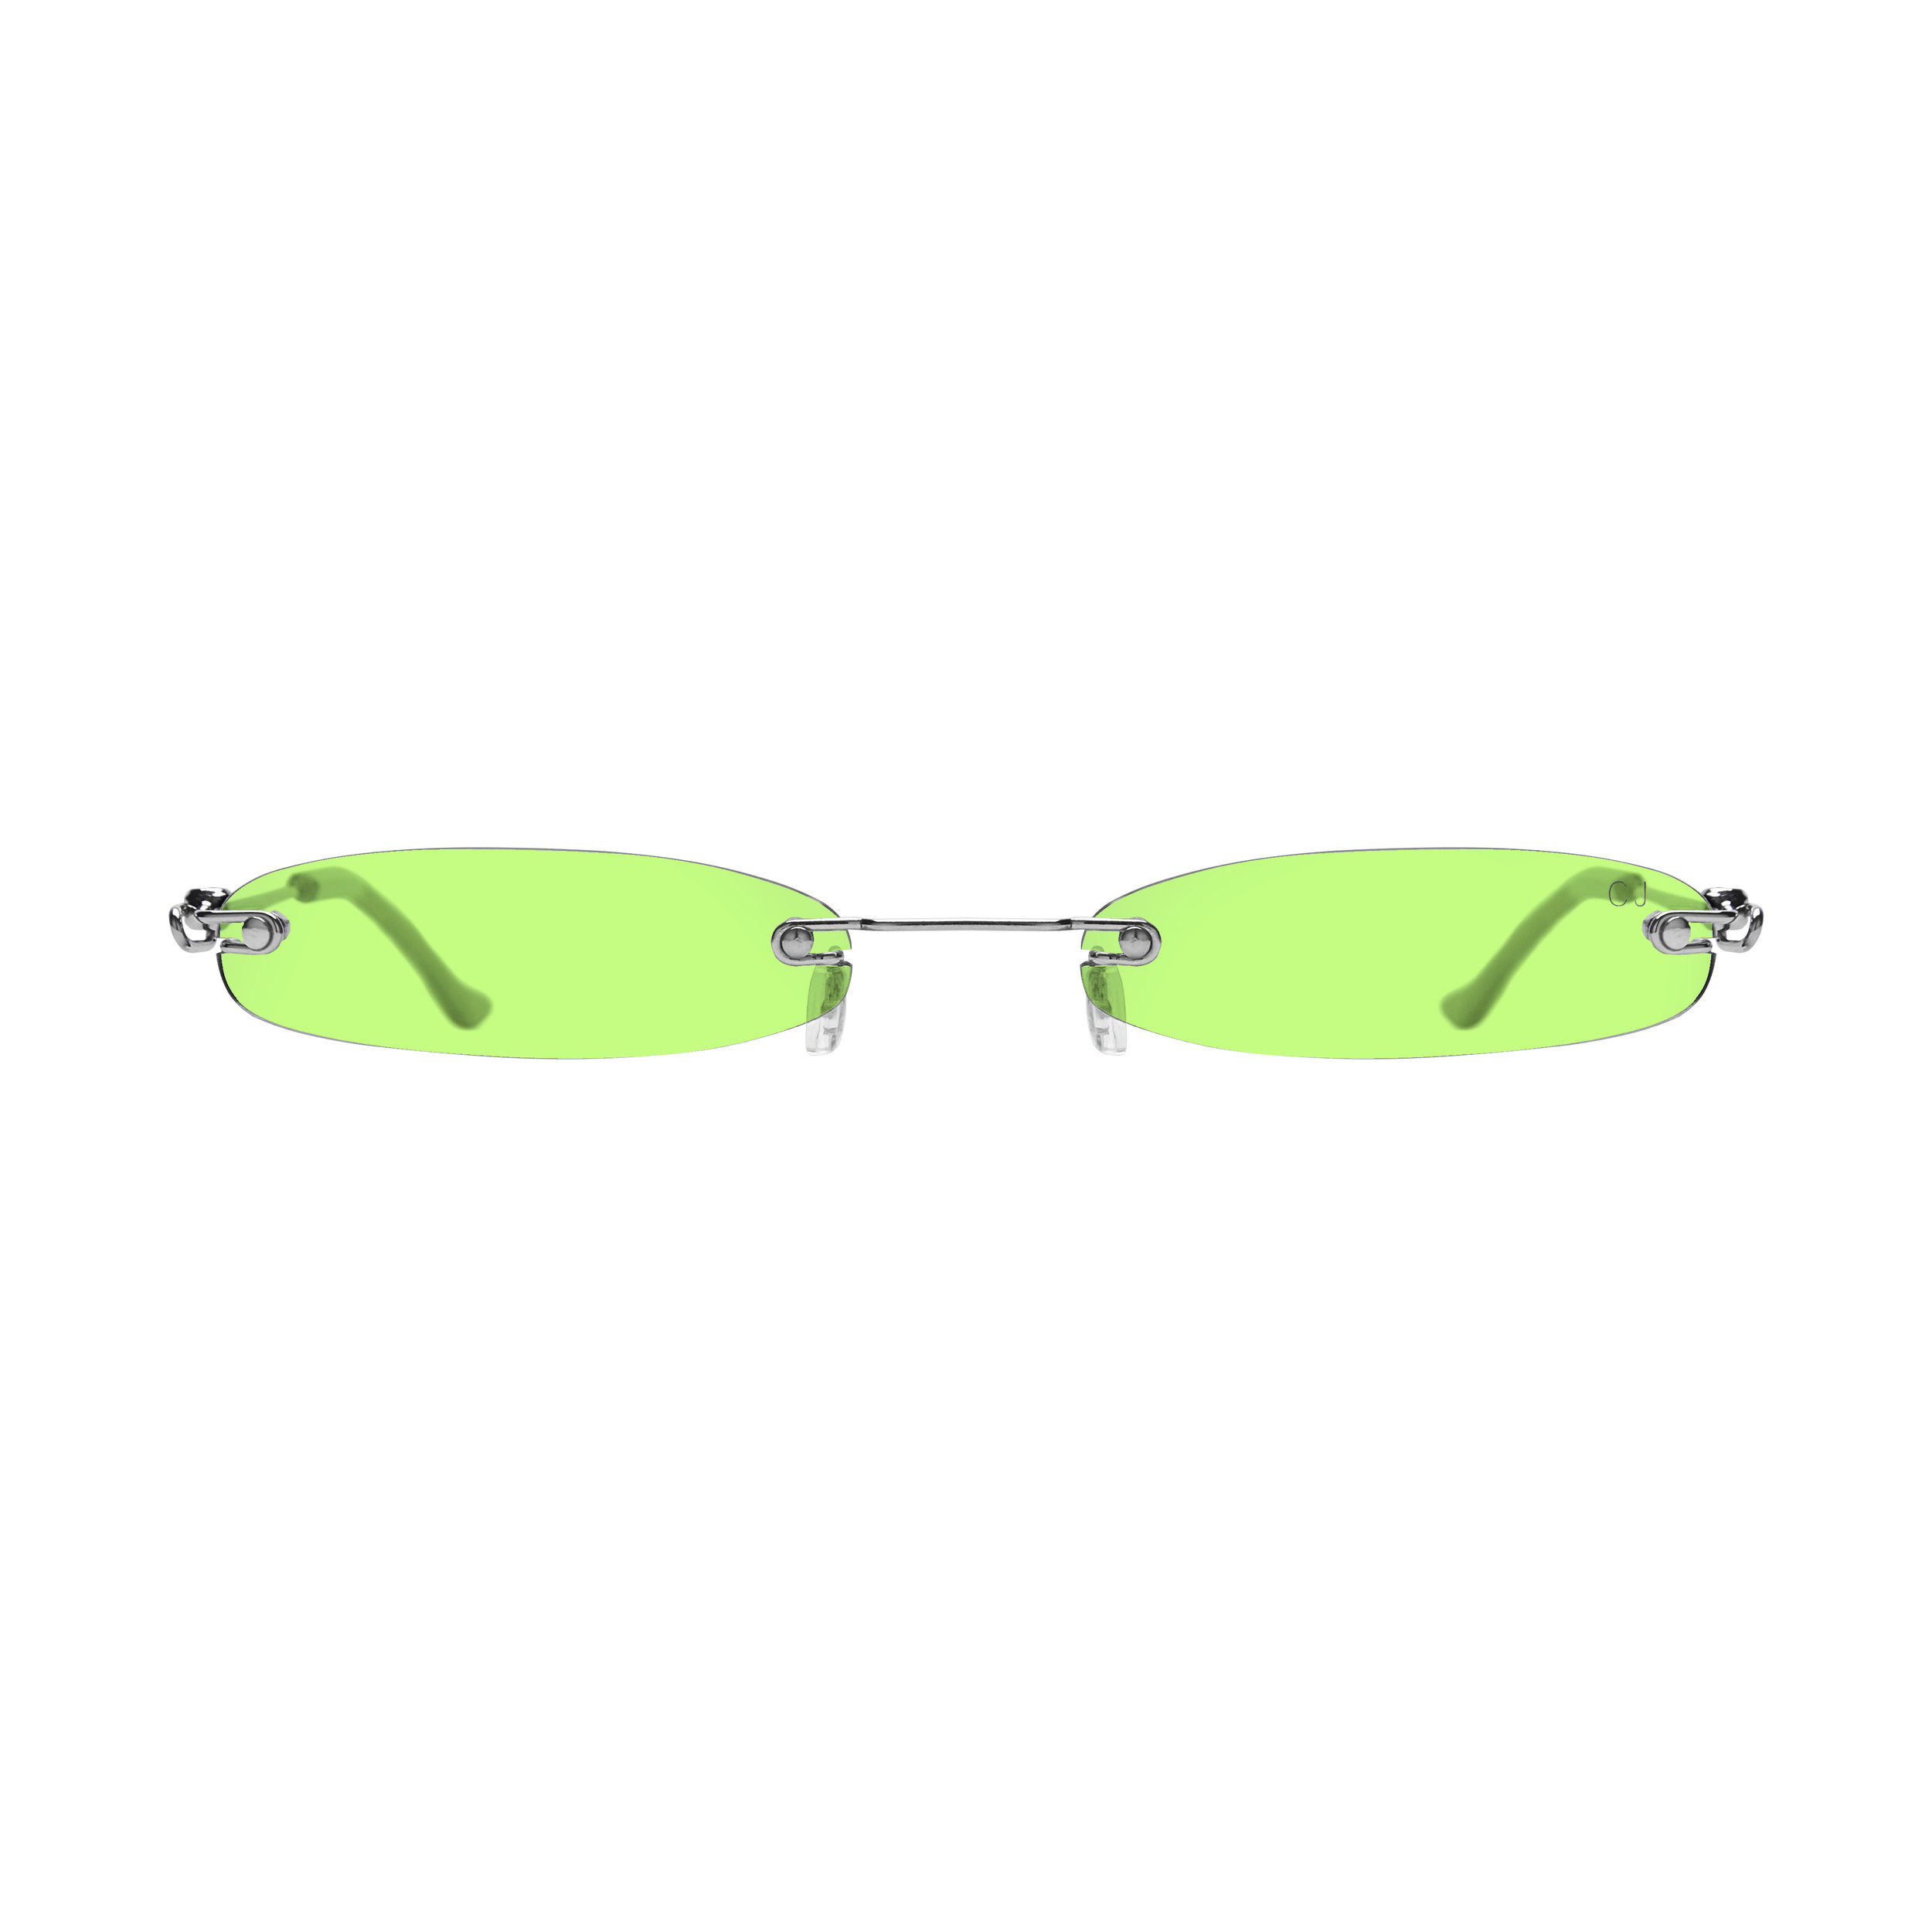 ChristianahJones_Glasses_Green_01 (1).jpg